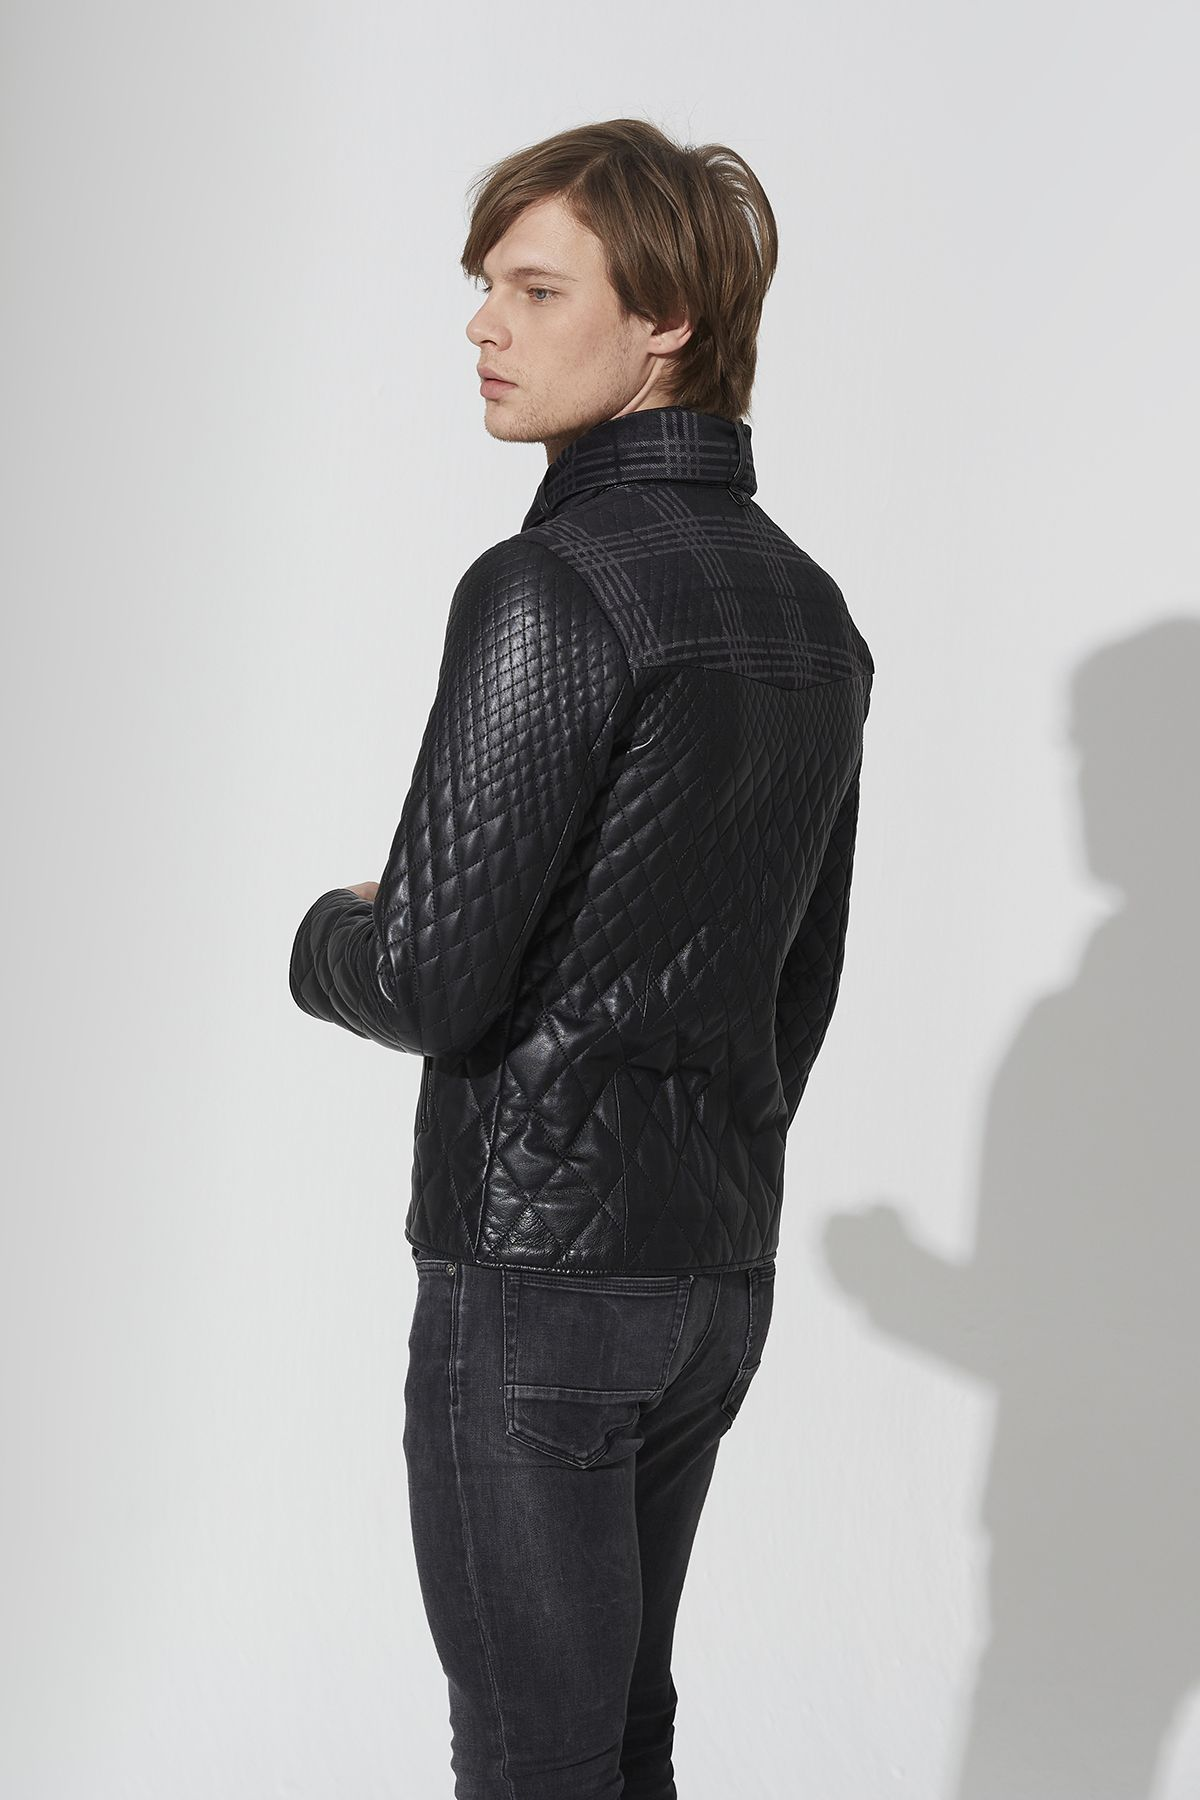 Men's Leather Criss Cross Jacket With Matching Scarf